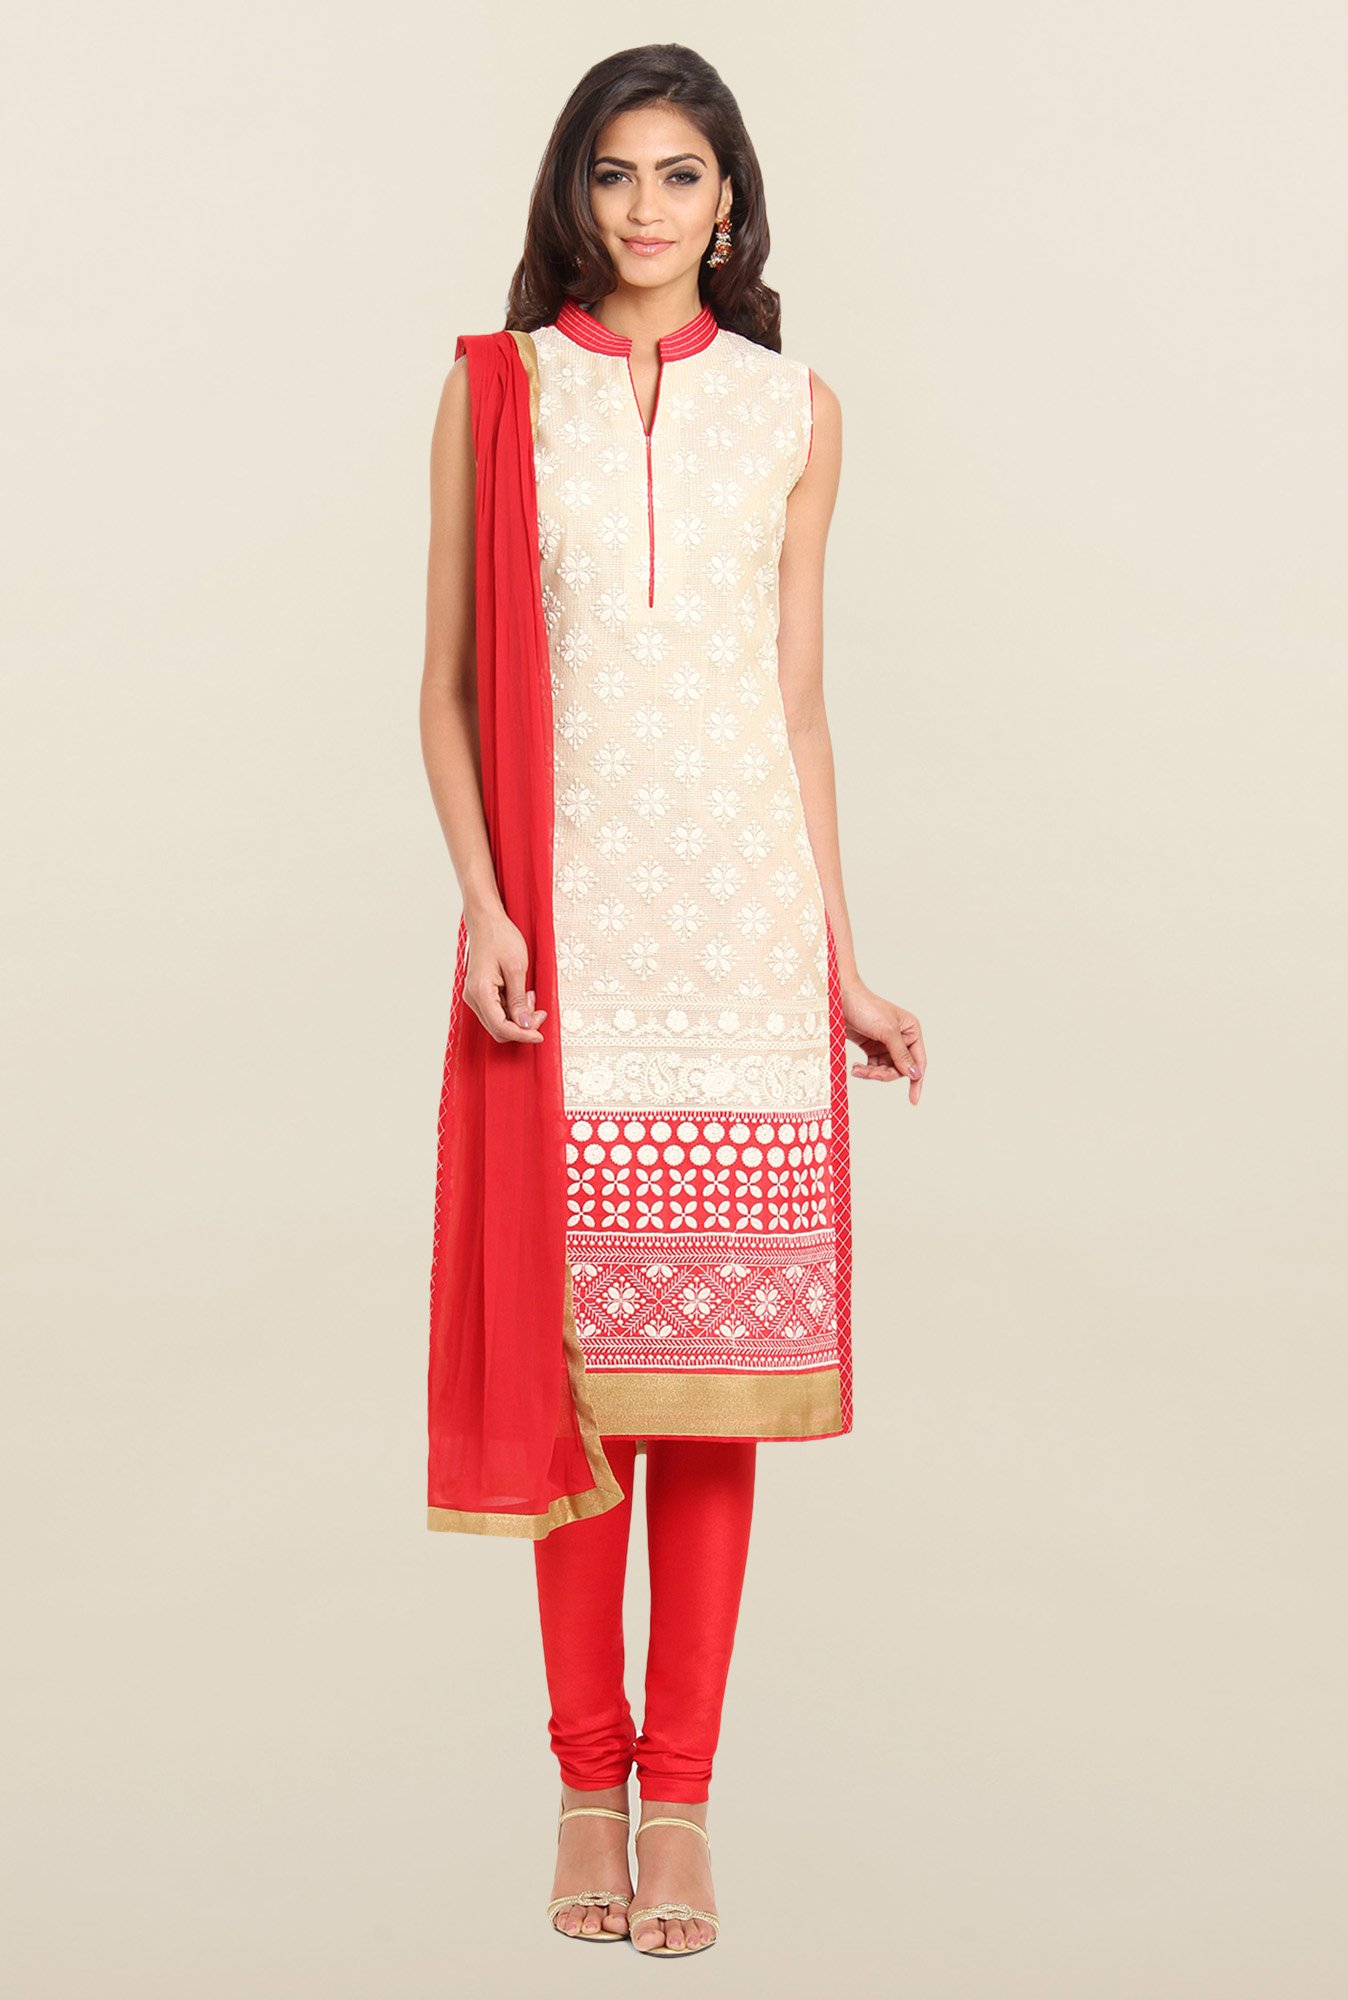 Soch Beige & Red Embroidered Churidar Suit Set